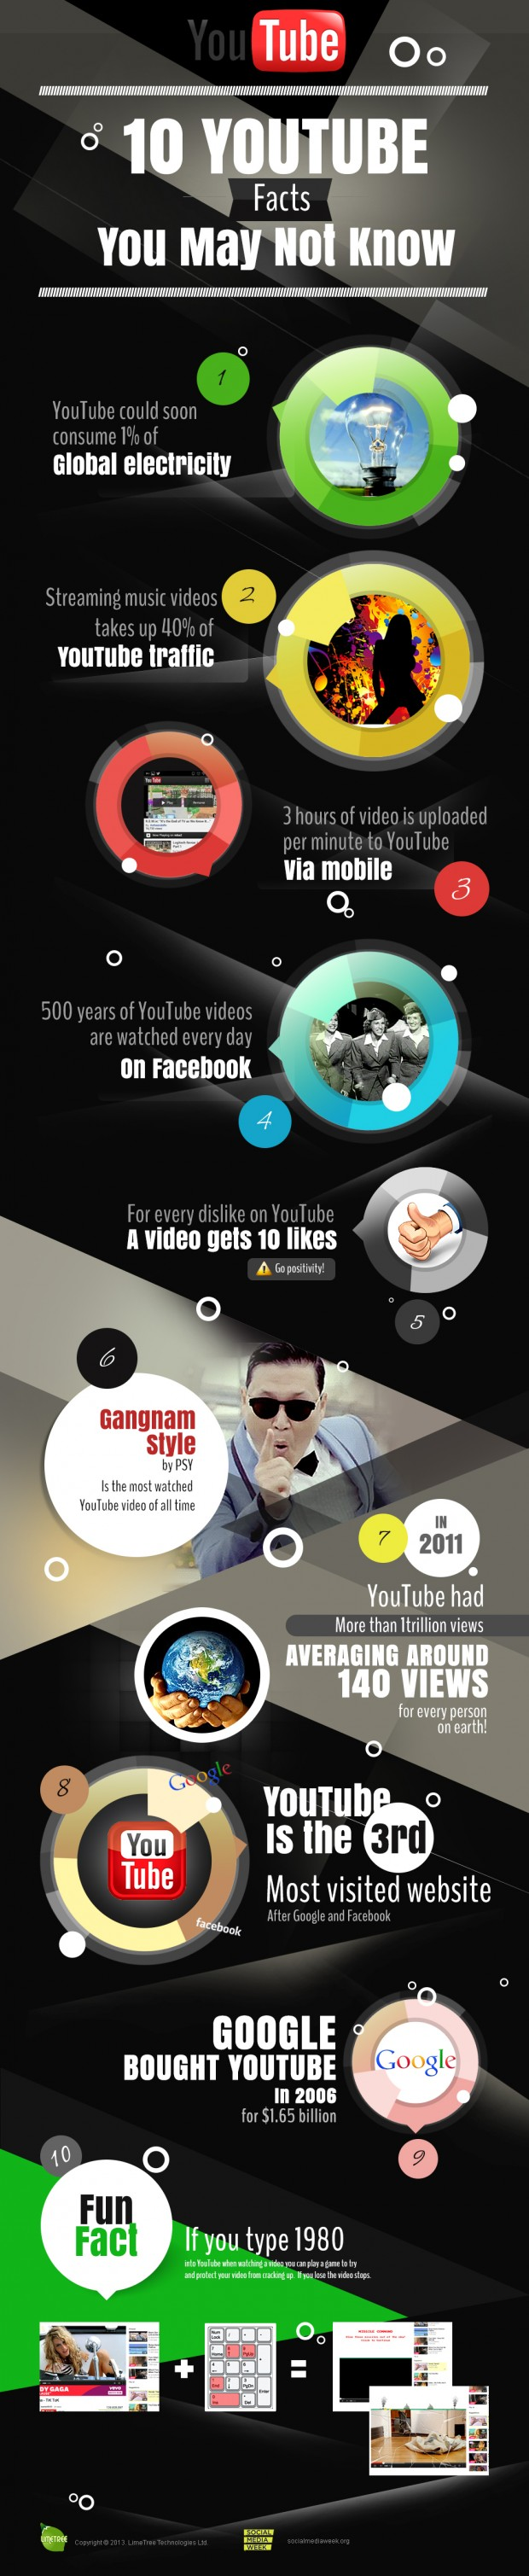 10 Youtube facts you may not know